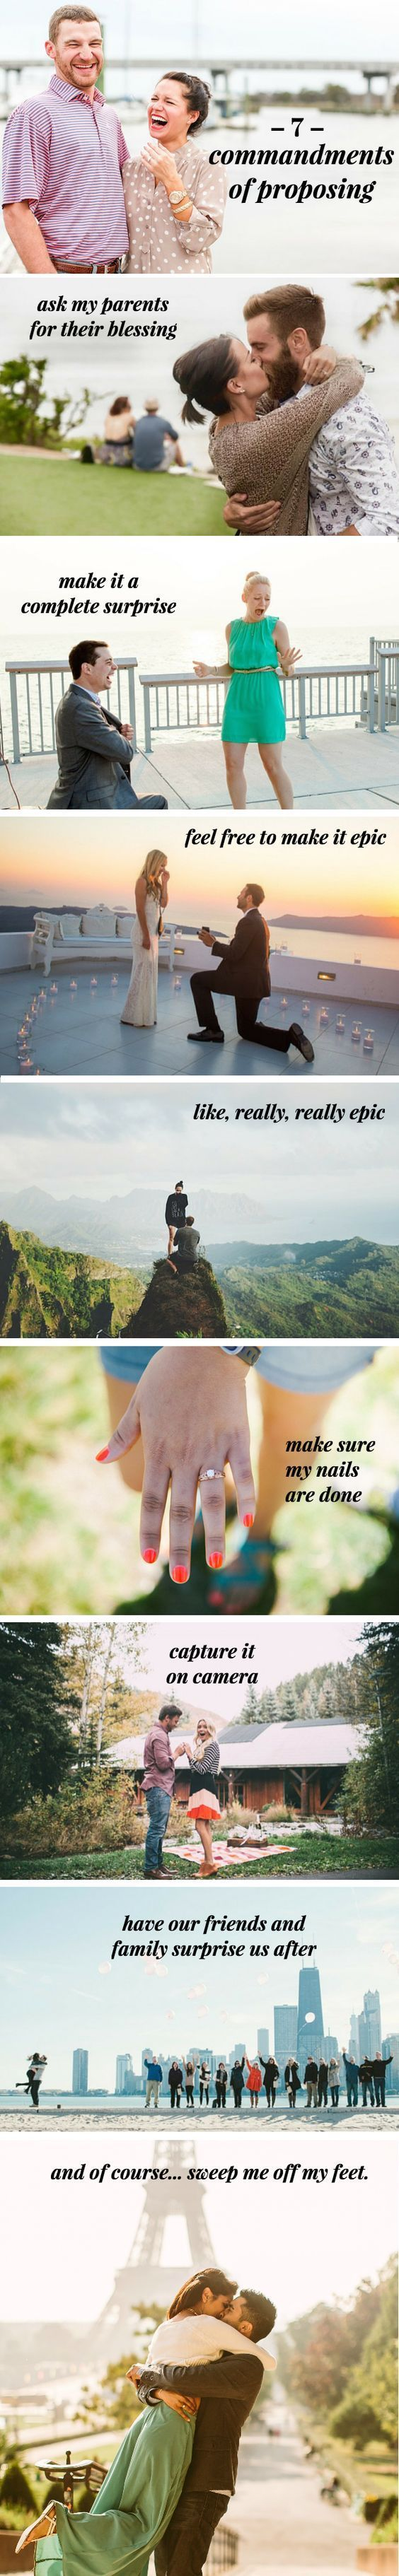 A marriage proposal should be romantic and special to each couple, but this guideline guarantees an epic day. Before you pop the questions, make sure you do these seven things!